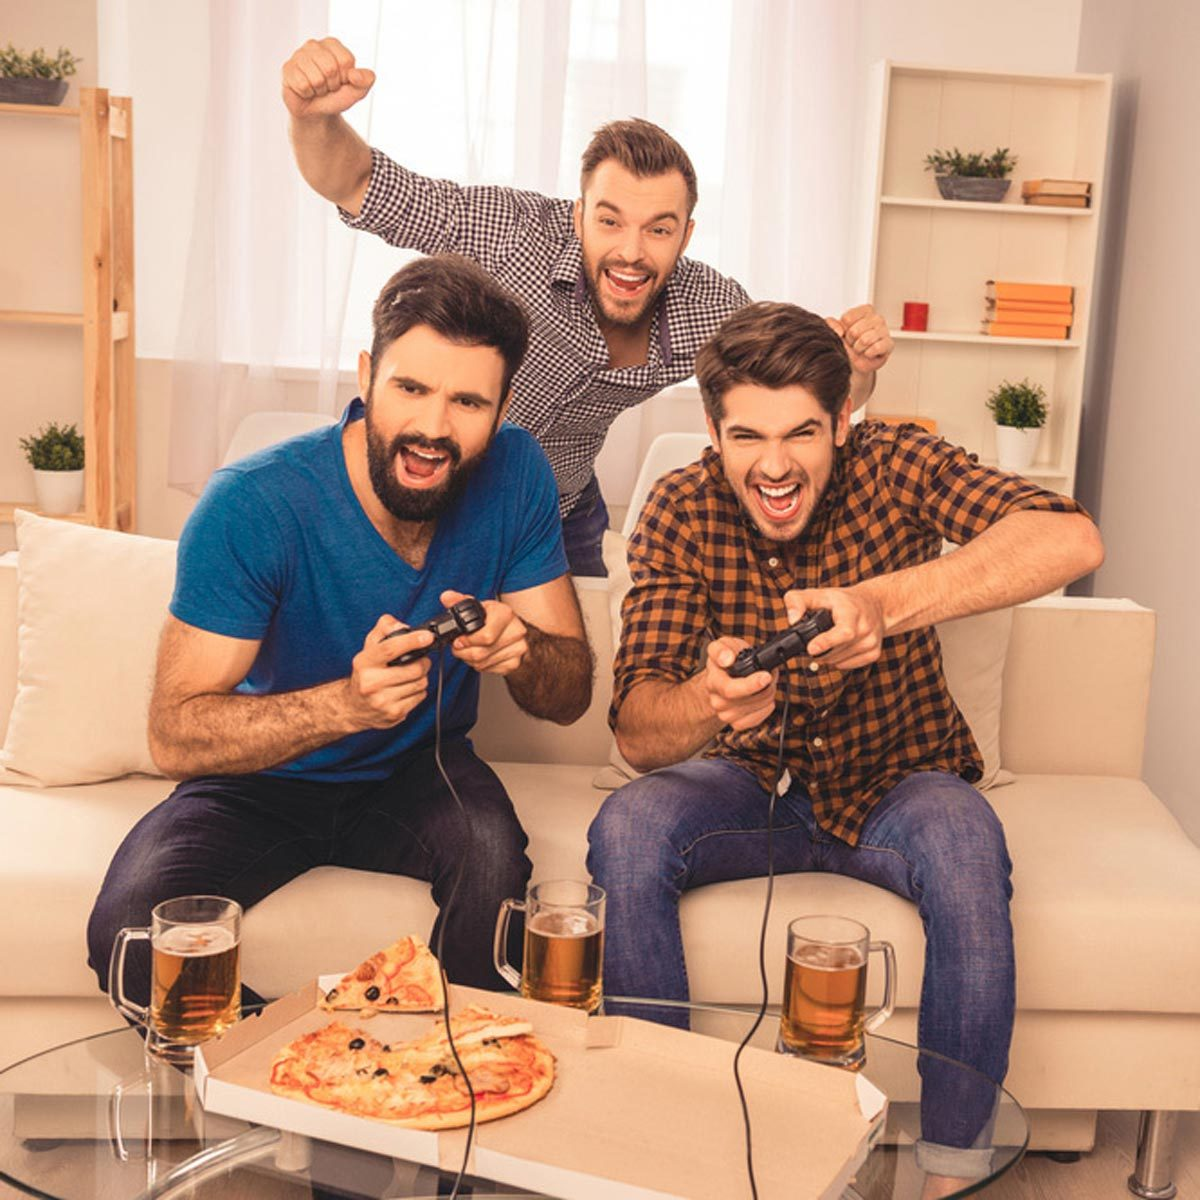 guys playing video games excited eating pizza and drinking beer friends